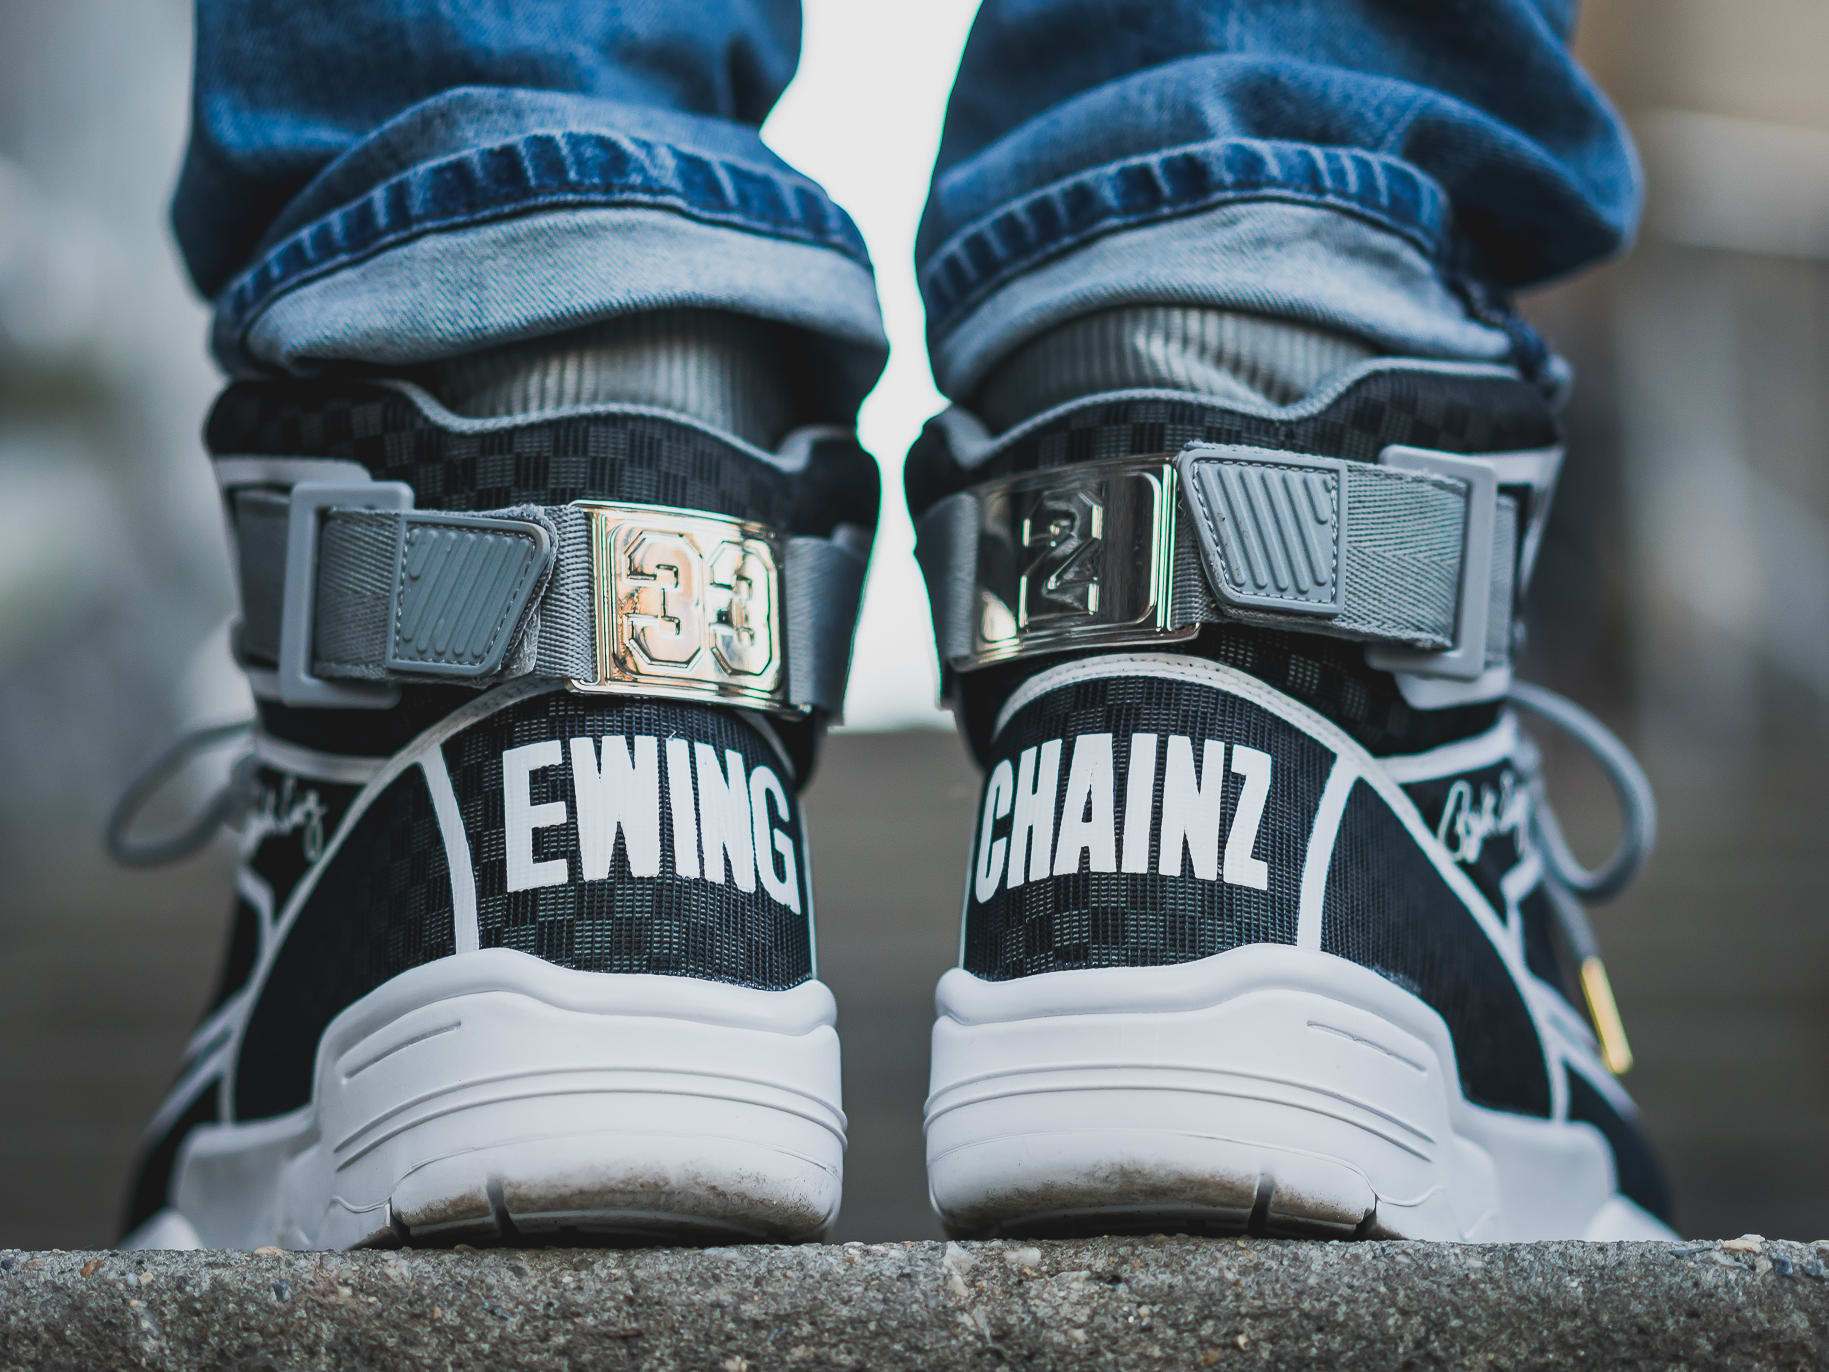 best service 7a2ad cac16 Image via Ewing Athletics 2 Chainz x Ewing Athletics 33 Hi